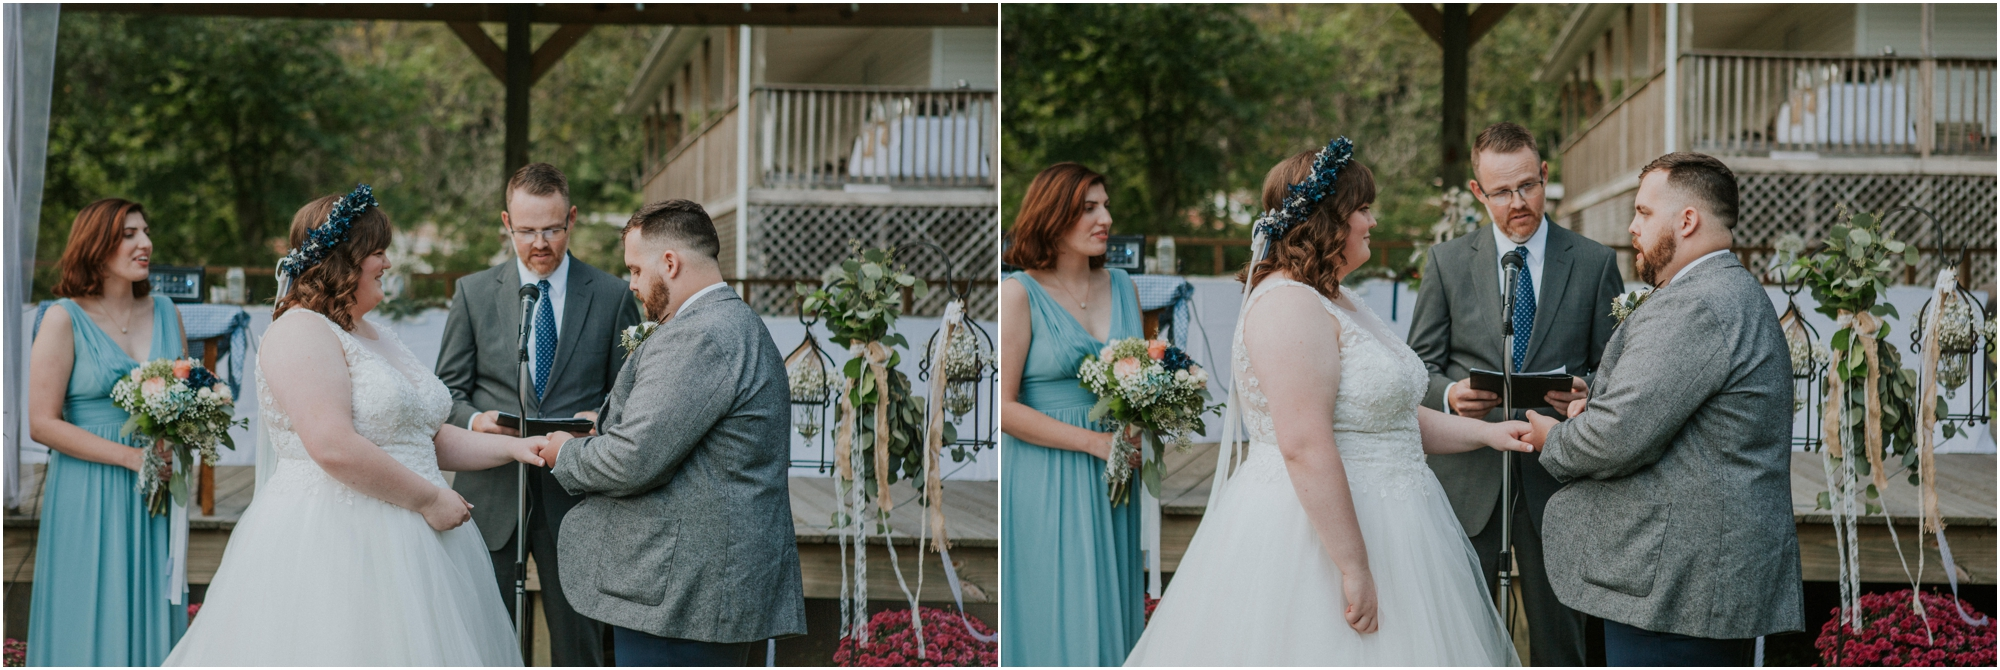 caryville-robbins-middle-tennessee-intimate-cozy-fall-navy-rustic-backyard-wedding_0083.jpg